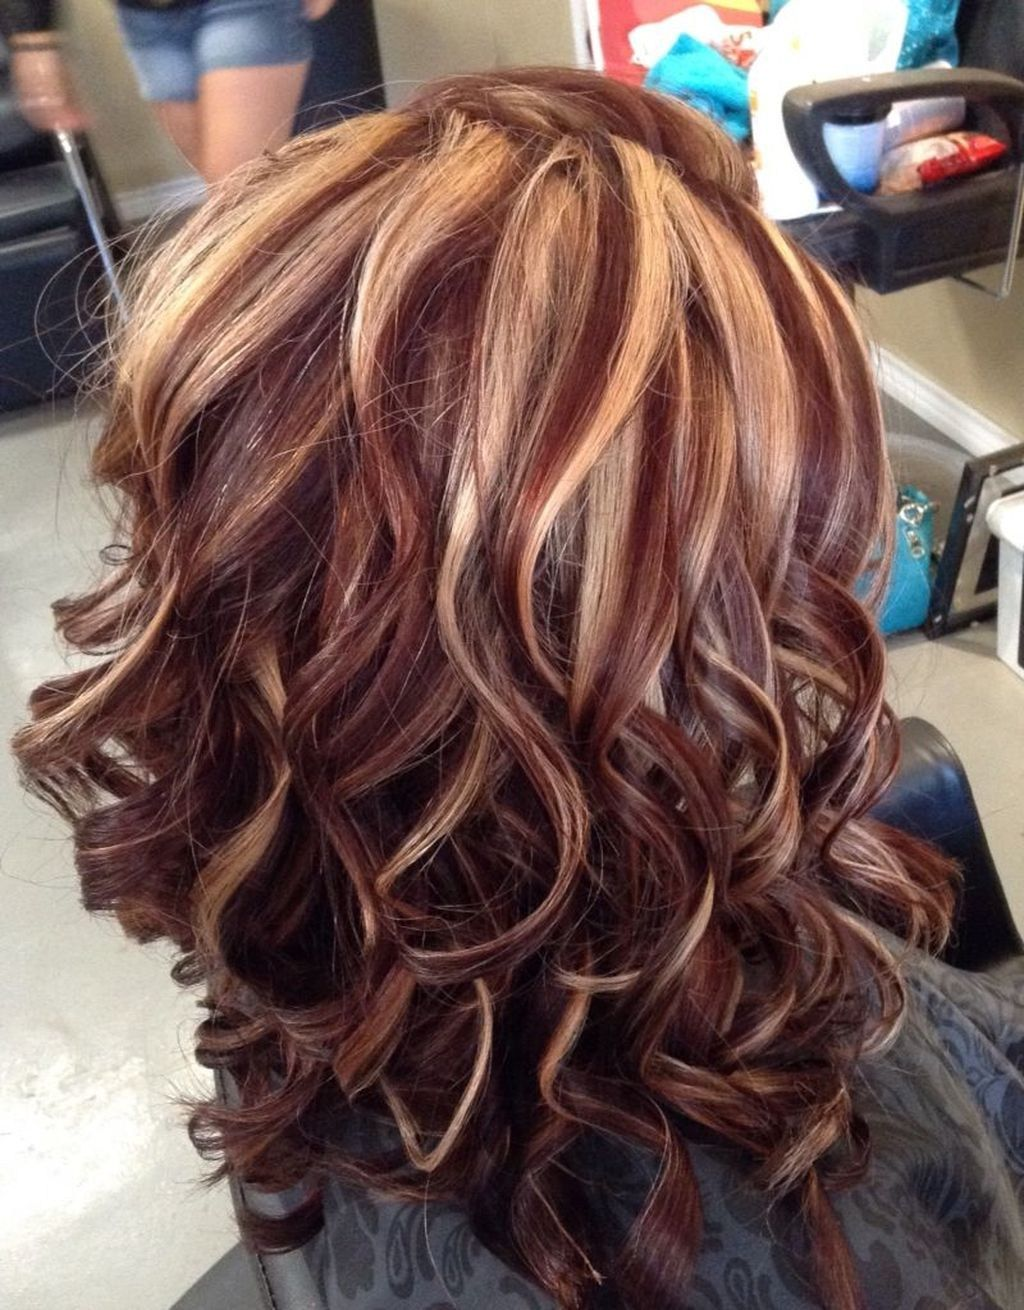 Gorgeous Spring Hair Color Ideas For Brunette 42 With Images